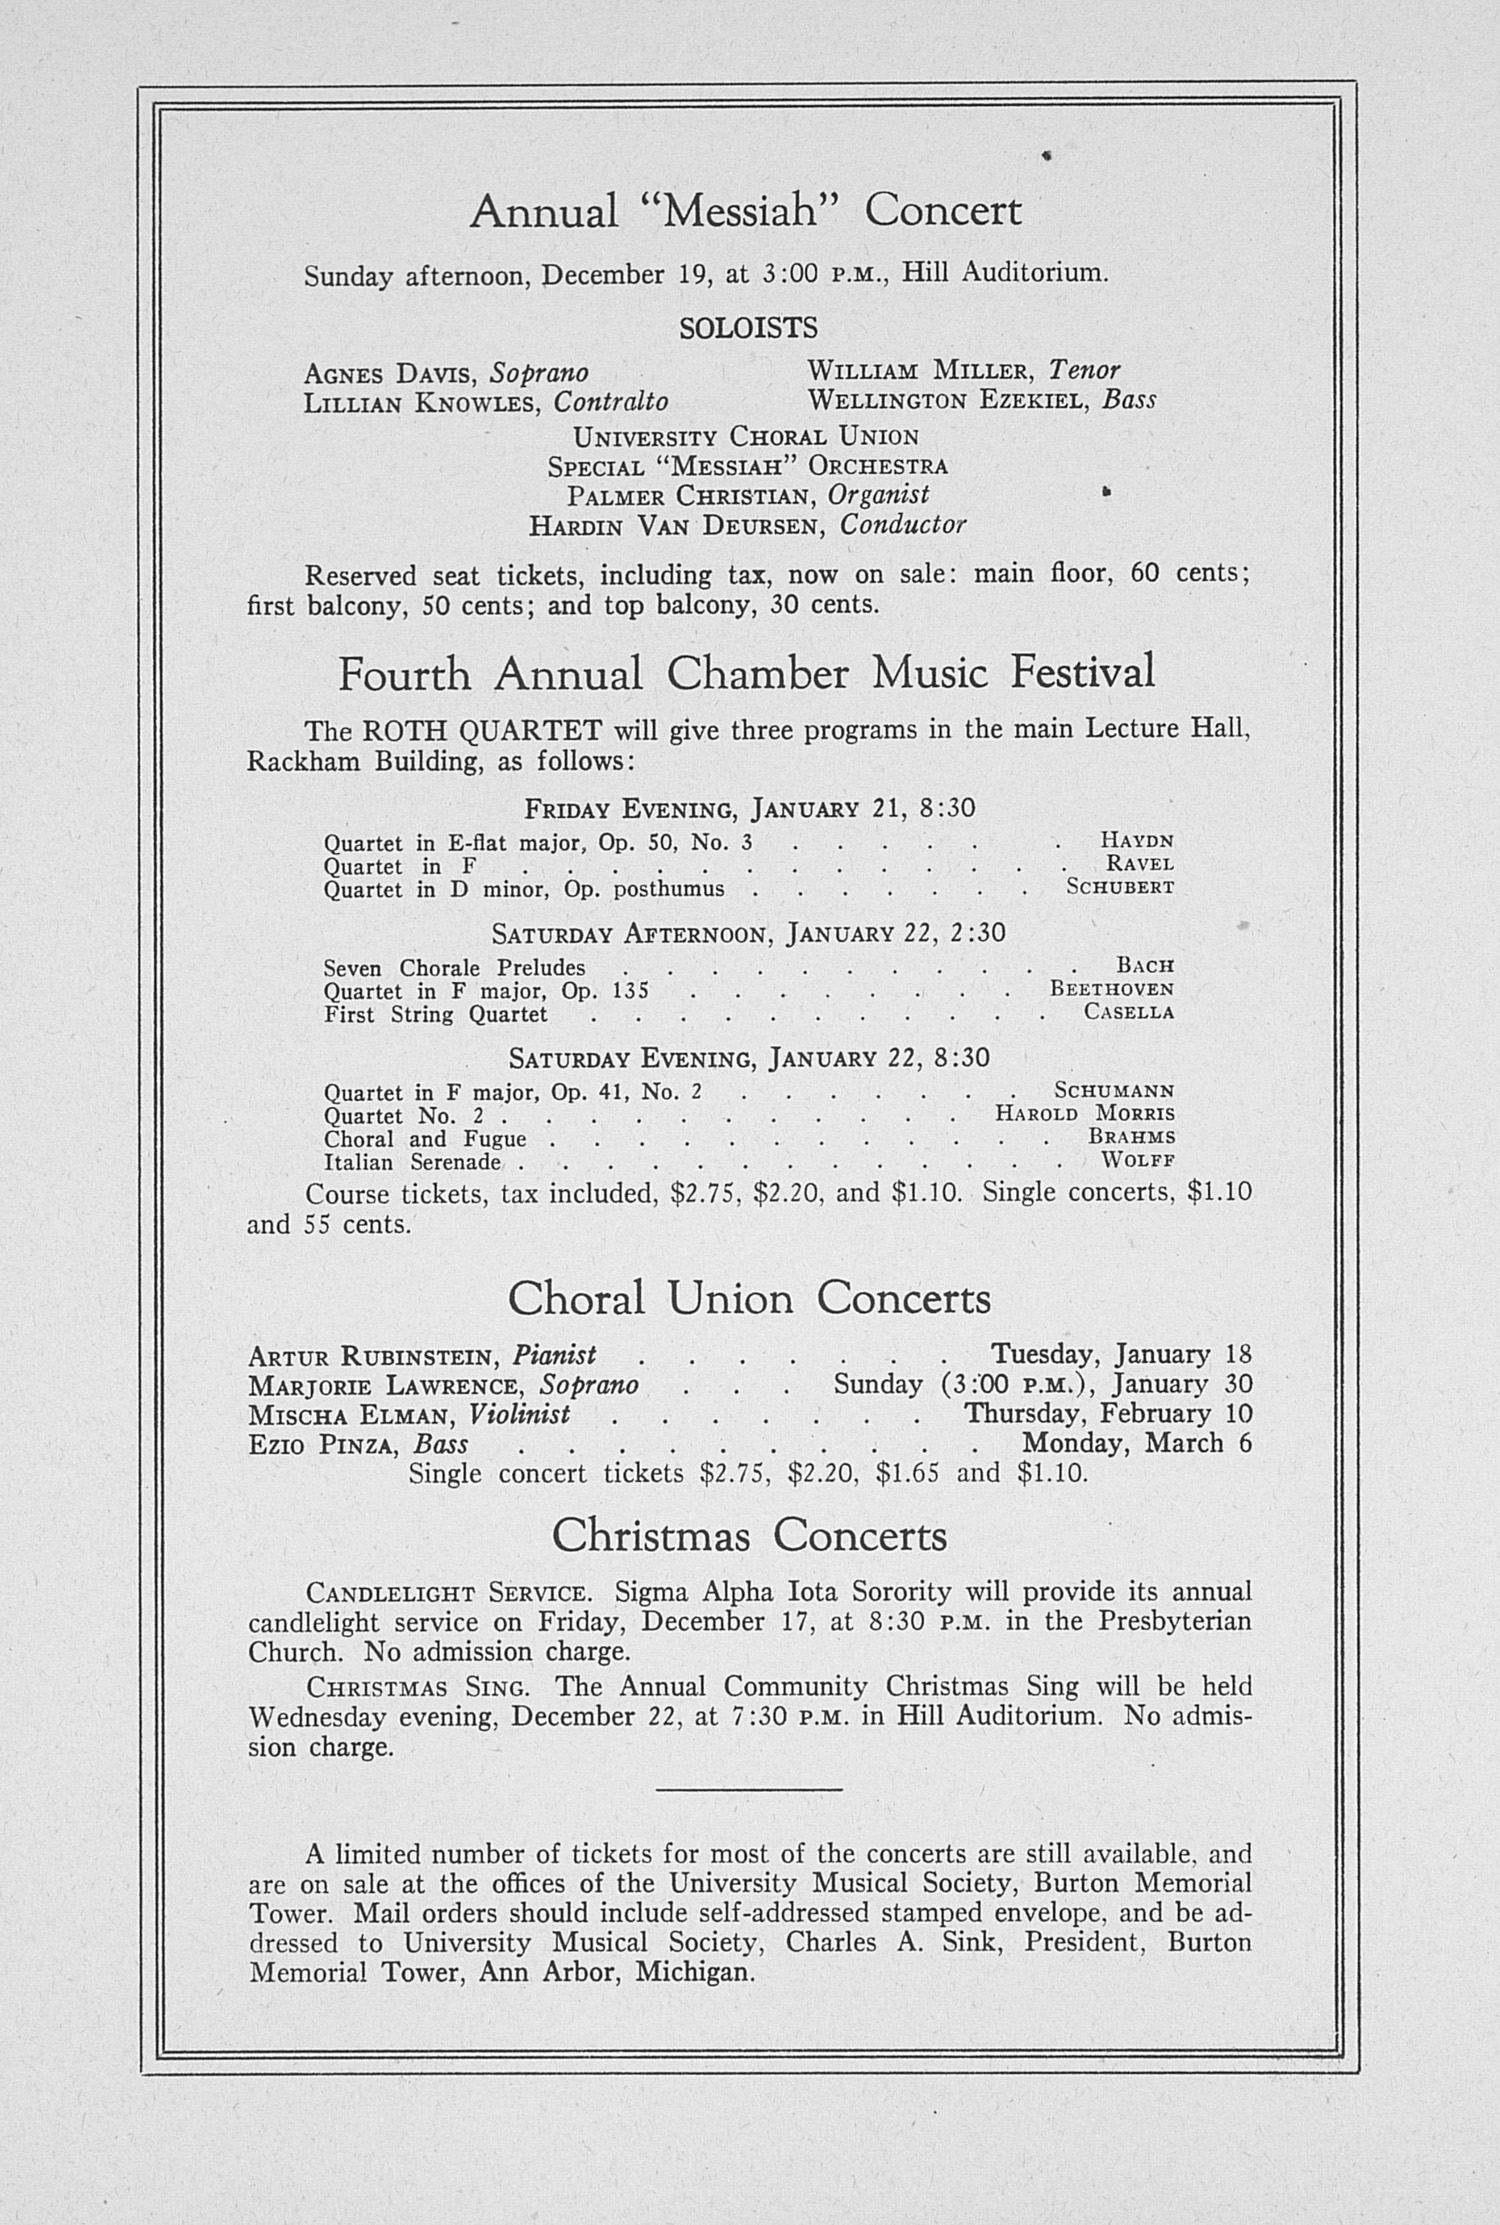 UMS Concert Program, December 14: Sixty-fifth Annual Choral Union Concert Series -- Don Cossack Chorus image